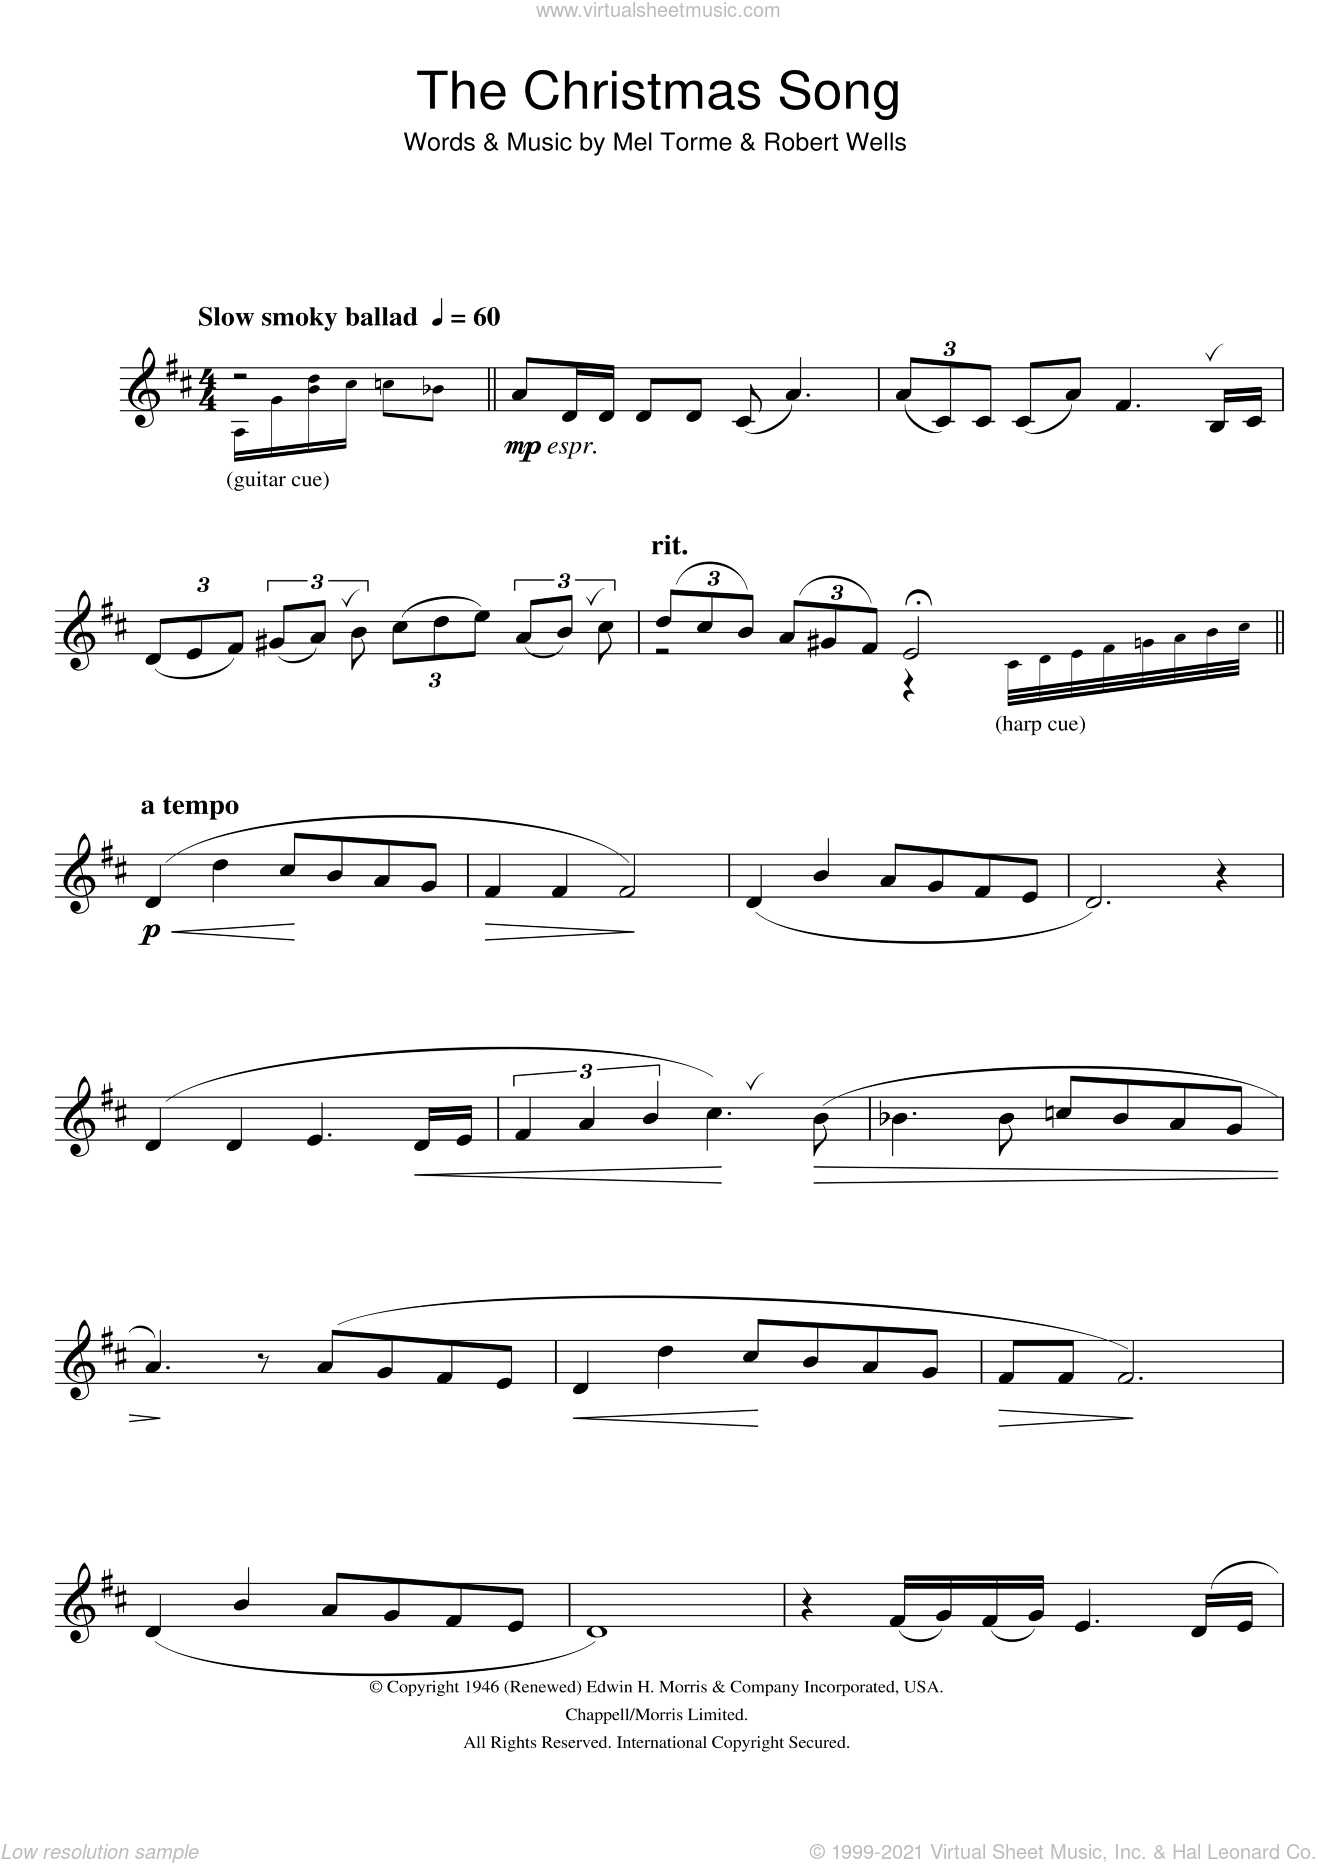 The Christmas Song (Chestnuts Roasting On An Open Fire) sheet music for clarinet solo by Mel Torme and Robert Wells, intermediate skill level